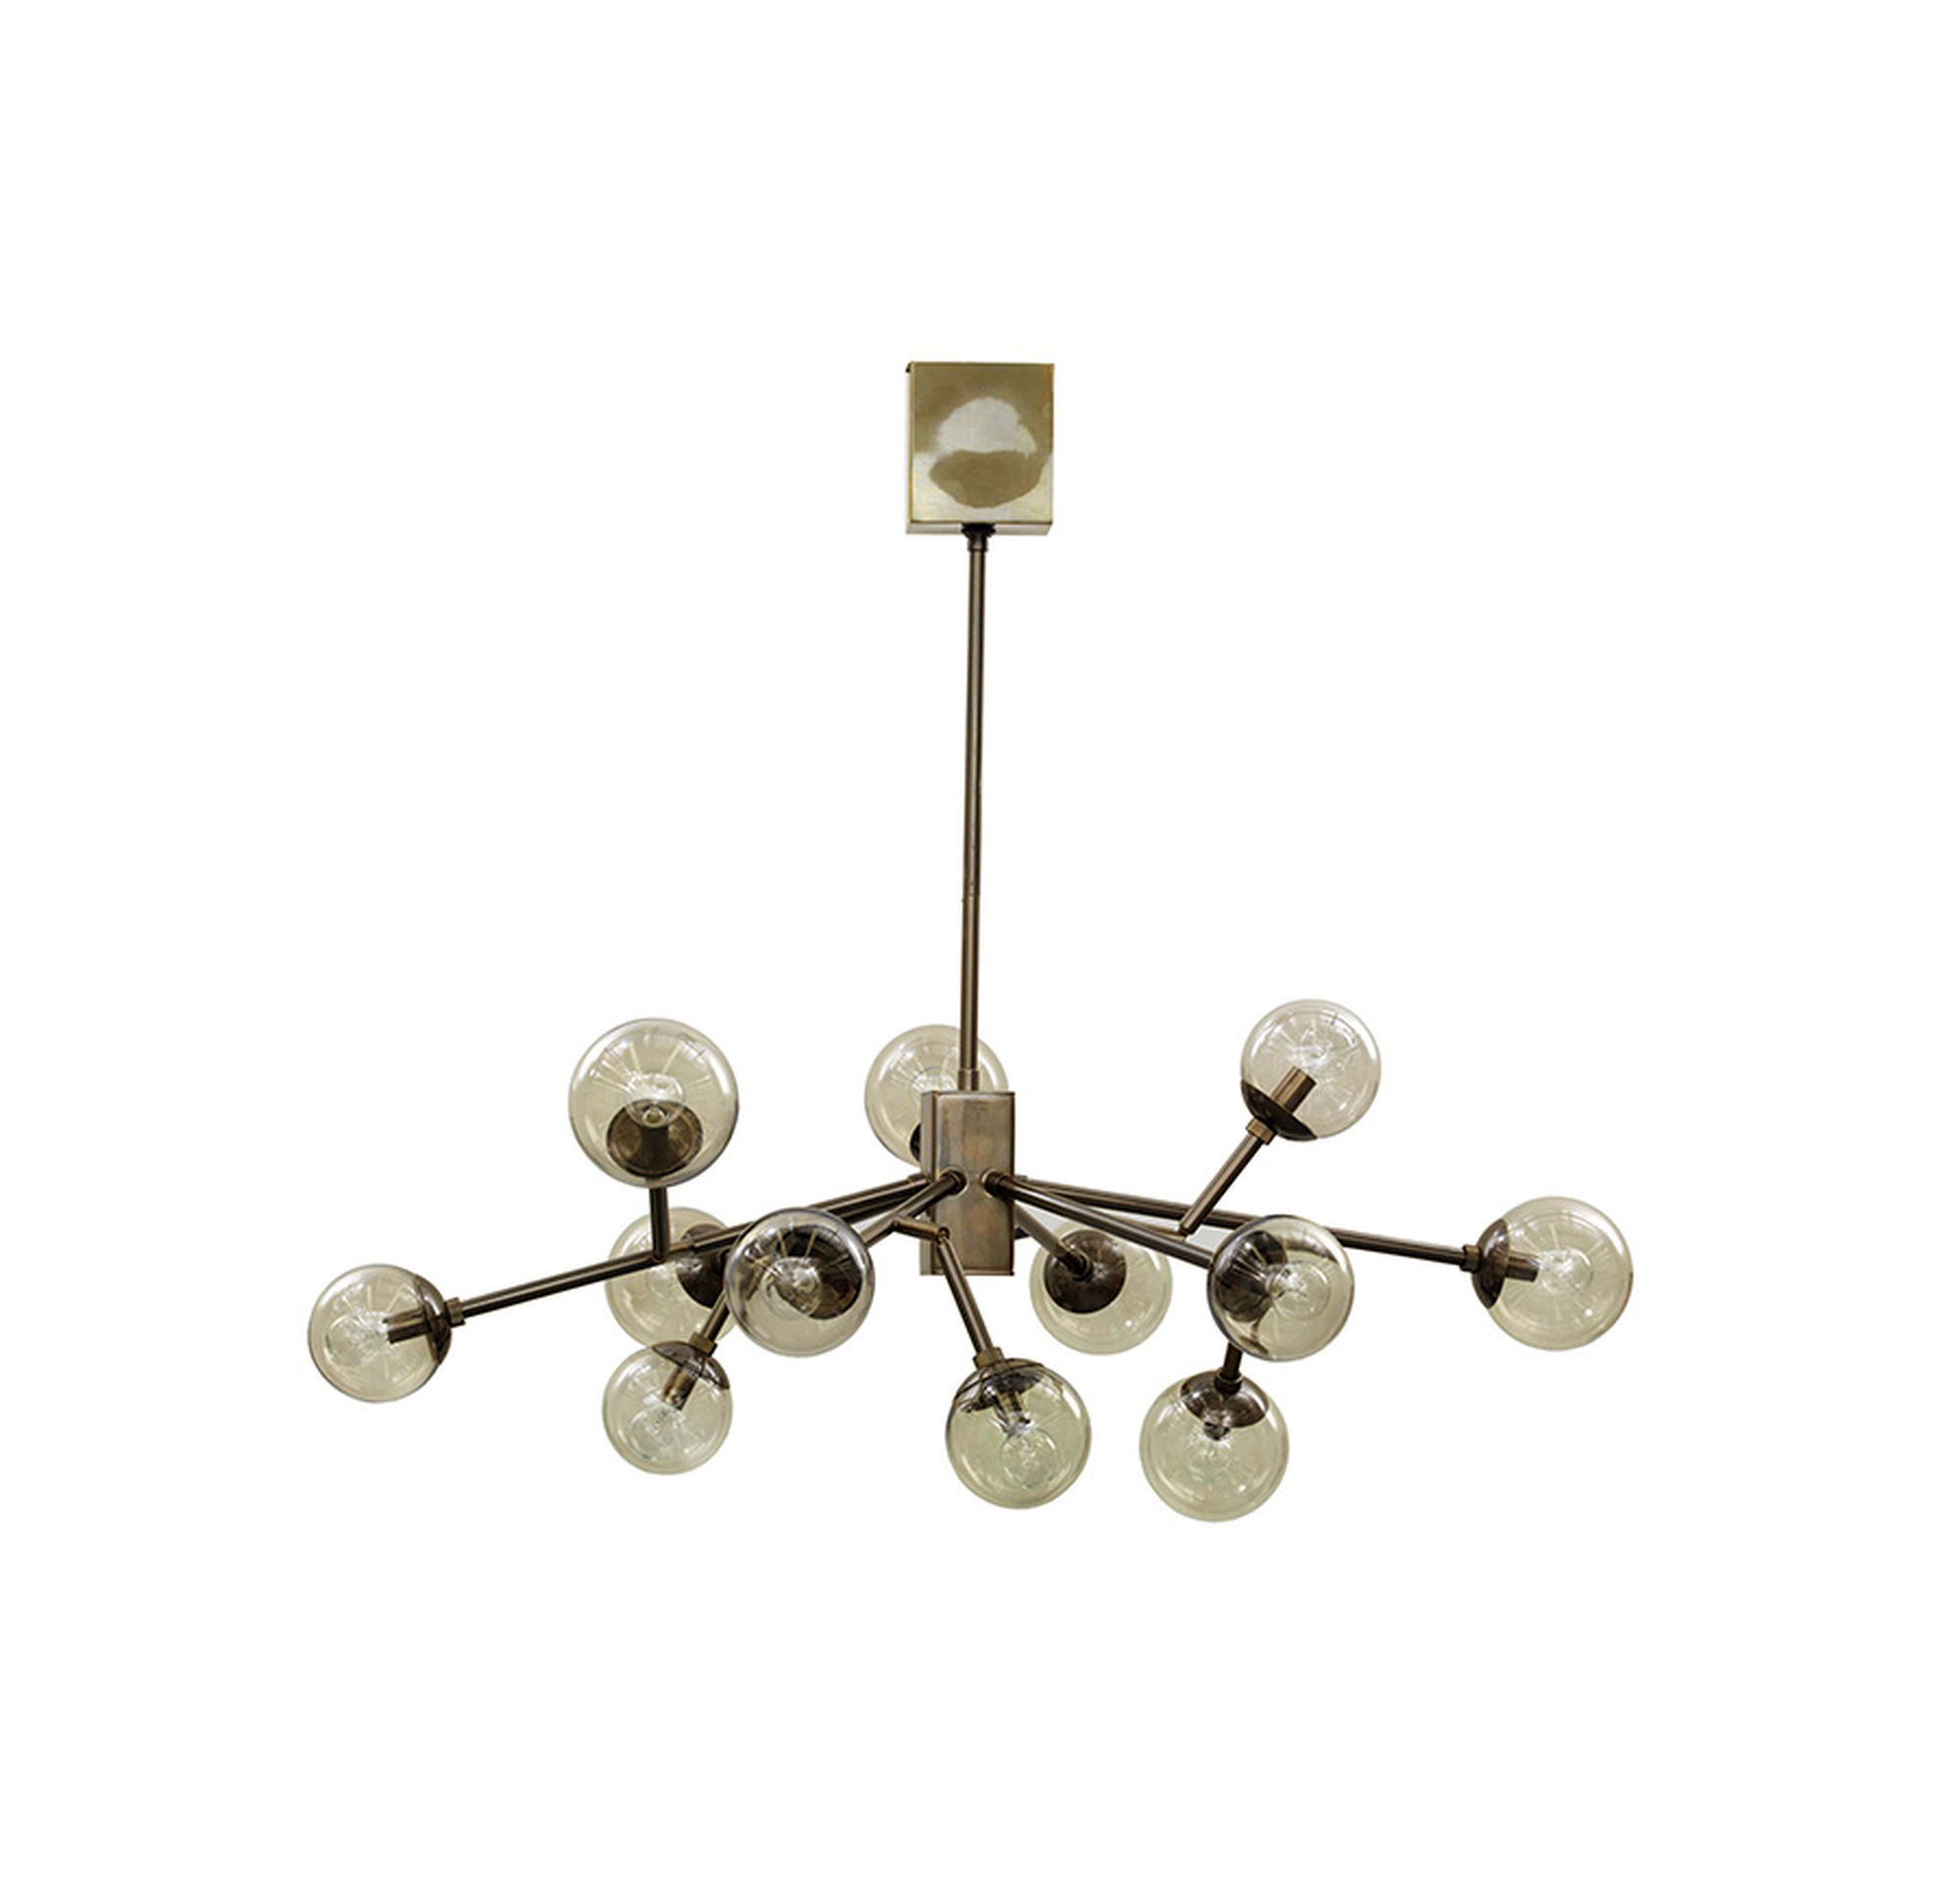 Savoy chandelier vintage brass with smoke glass aloadofball Choice Image